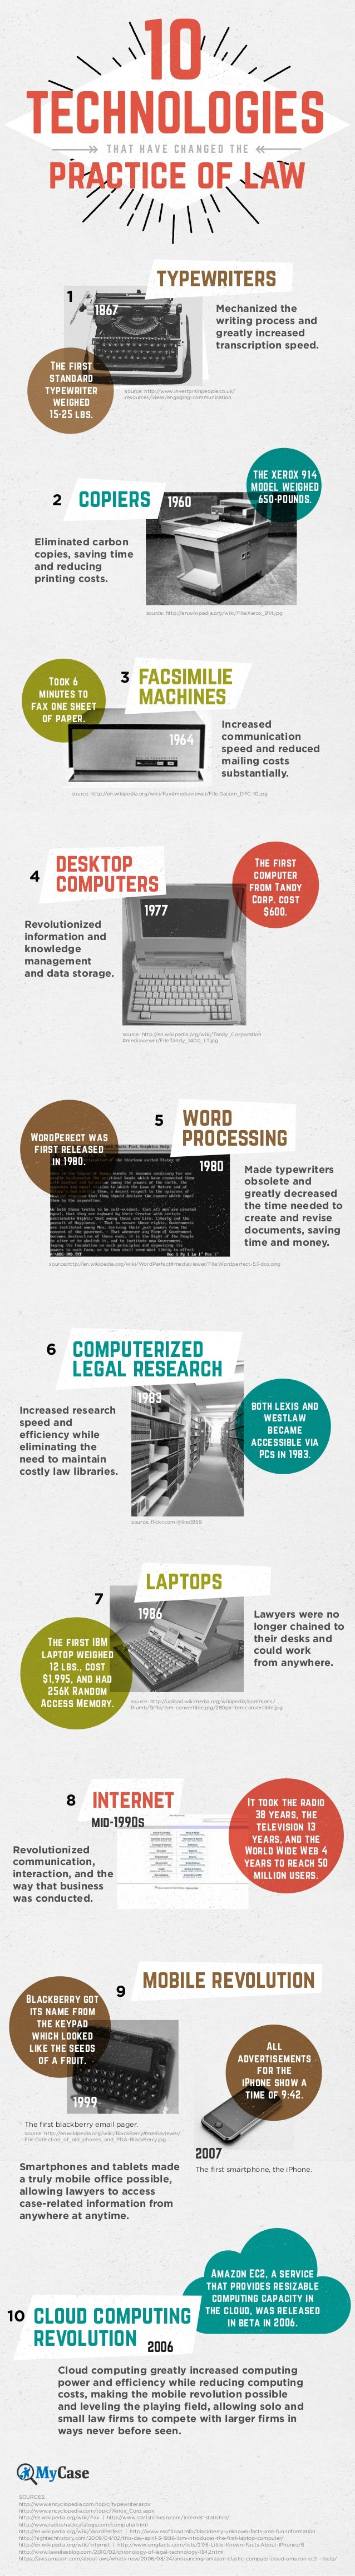 10 Technologies That Have Changed The Practice Of Law